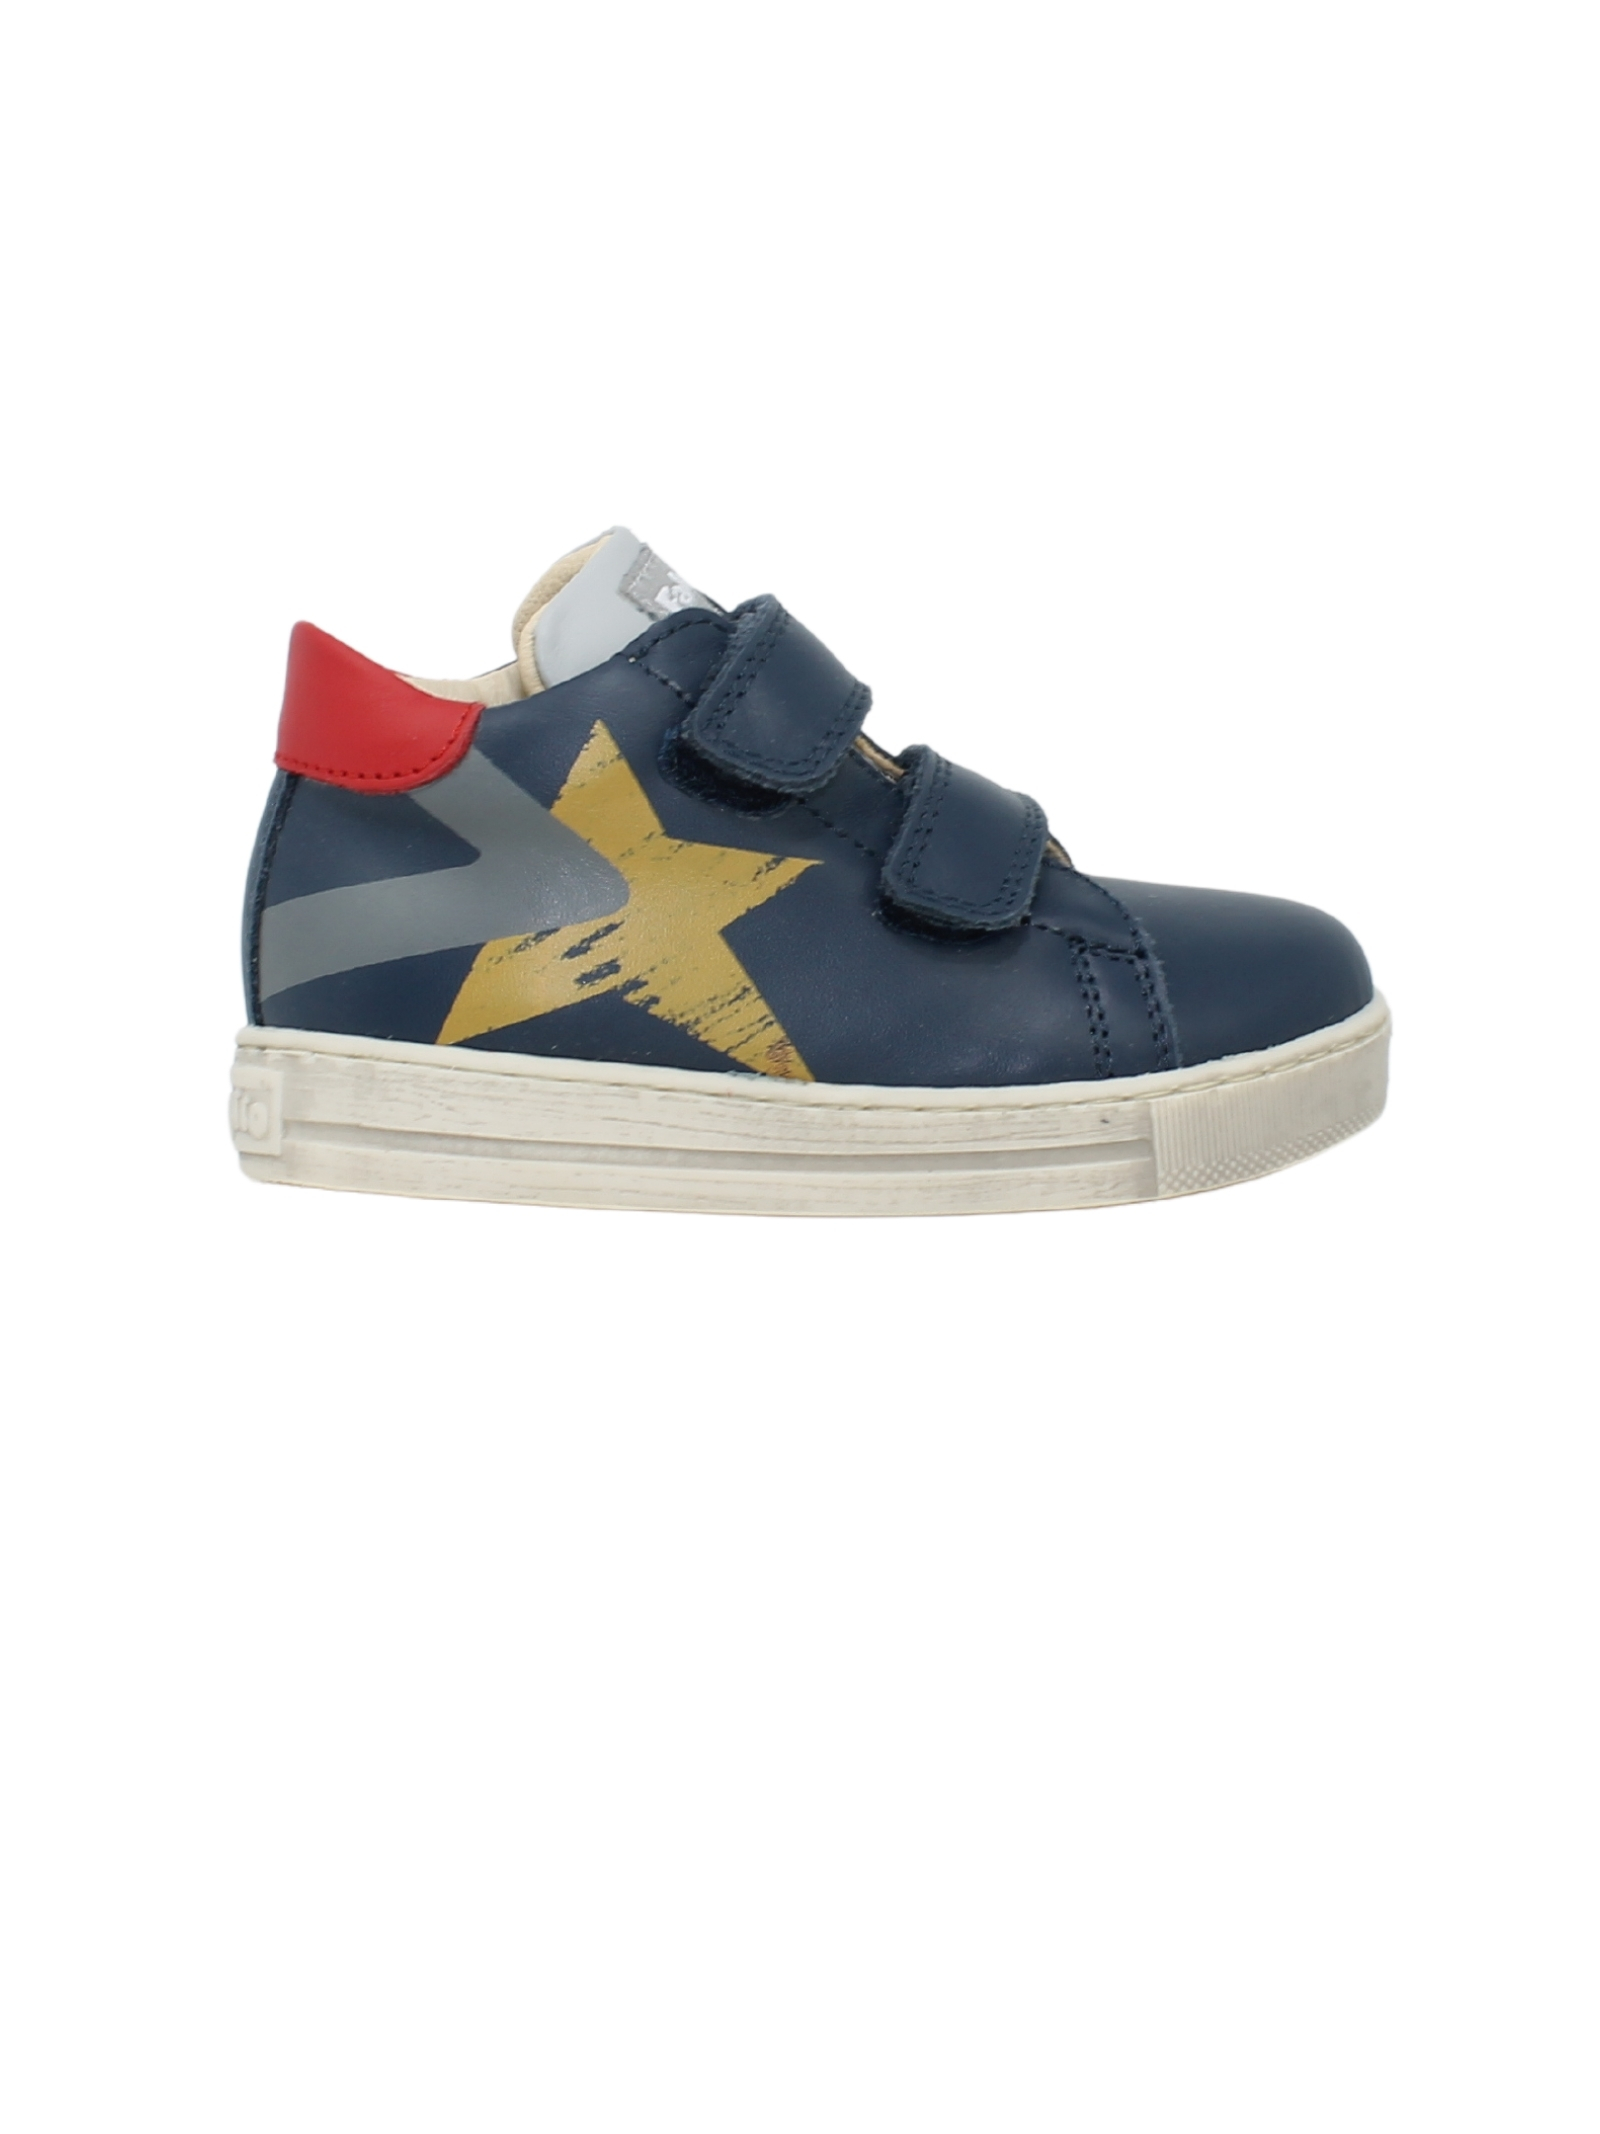 Lida Child sneakers FALCOTTO | Sneakers | 0012016203010C02NAVY